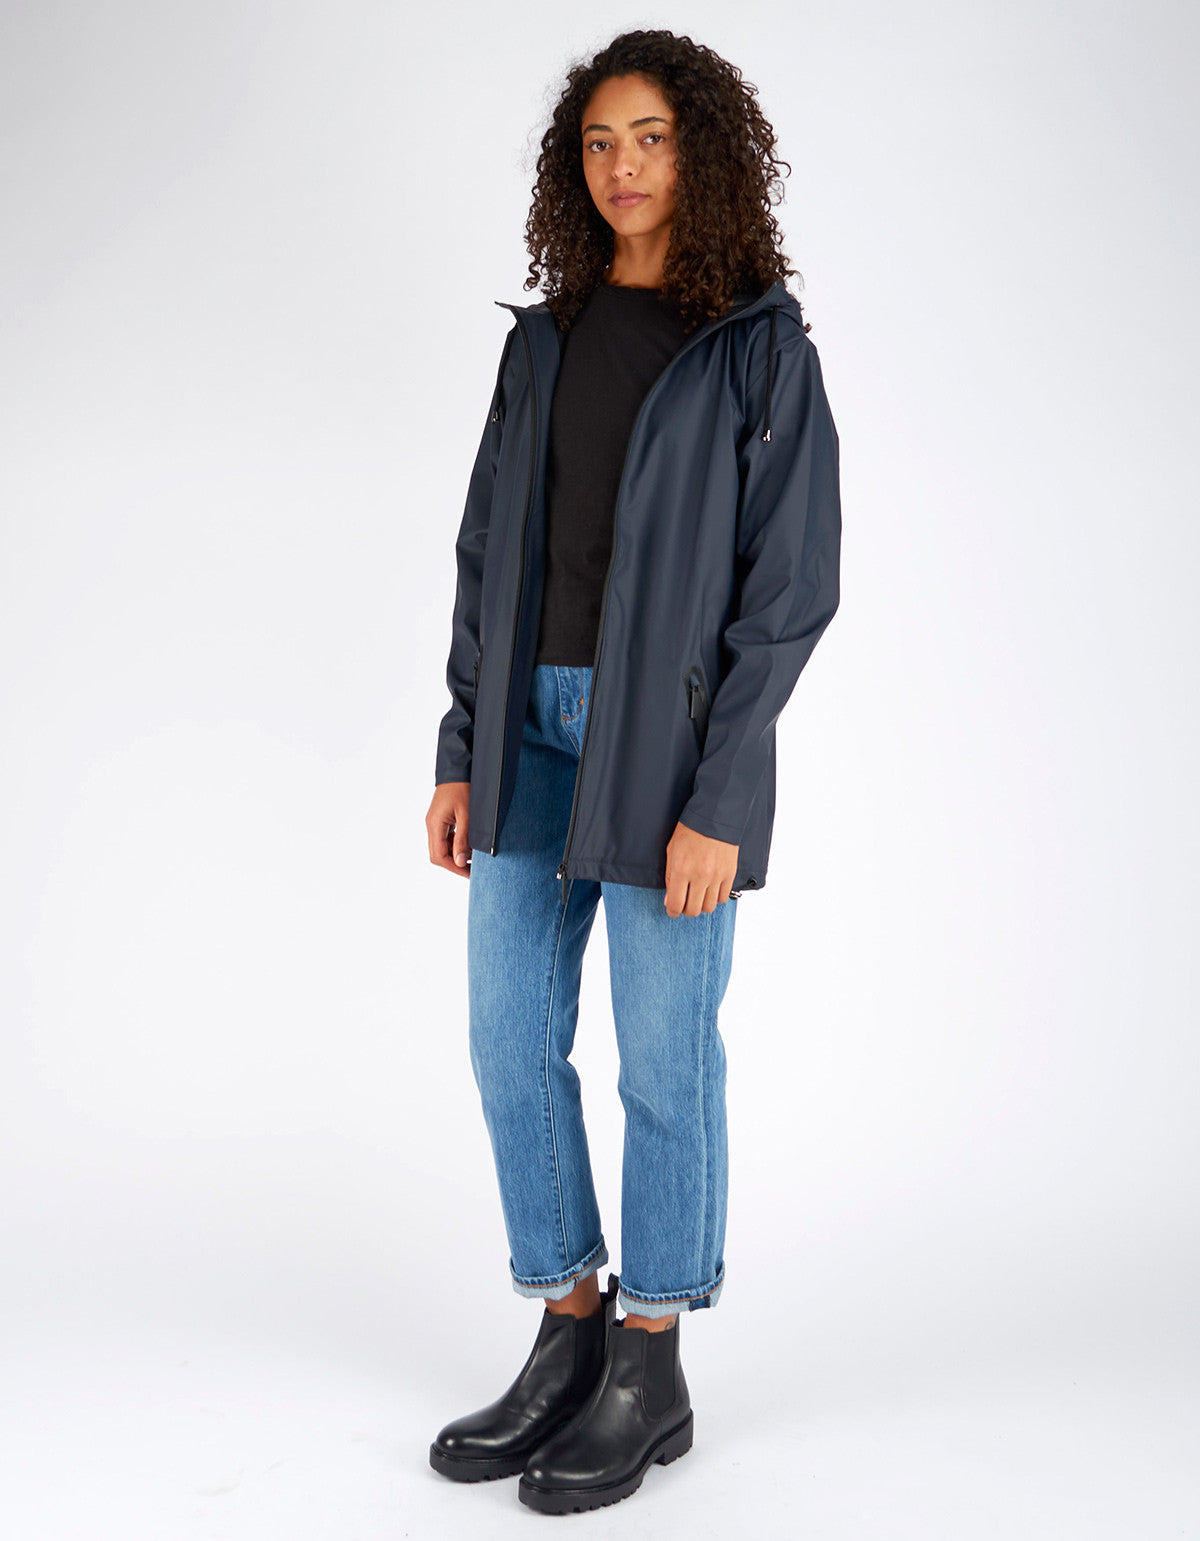 Rains Women's Breaker Jacket Black - Still Life - 3